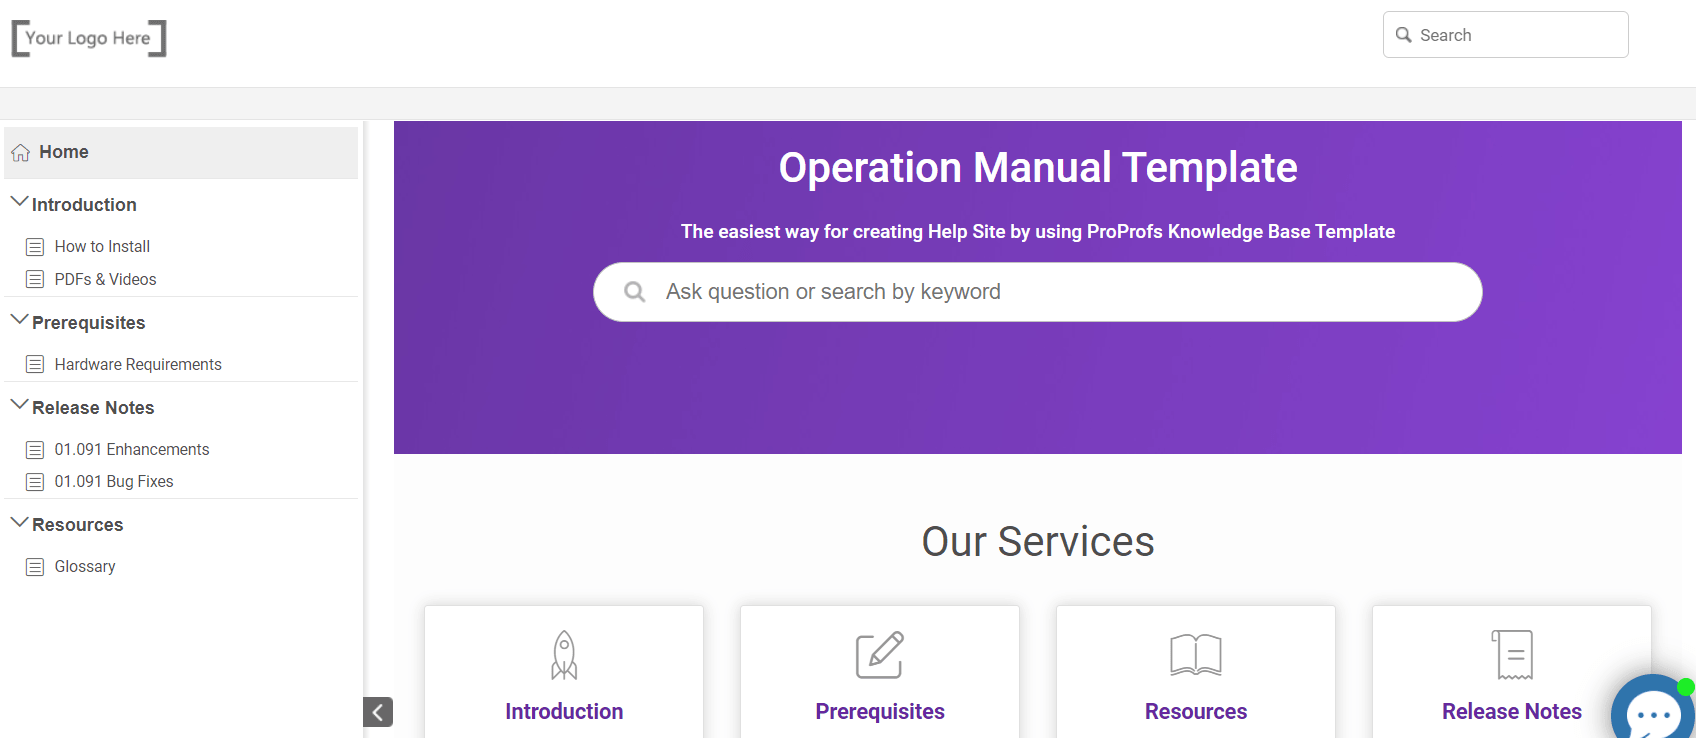 Ready to Use Operations Manual Templates